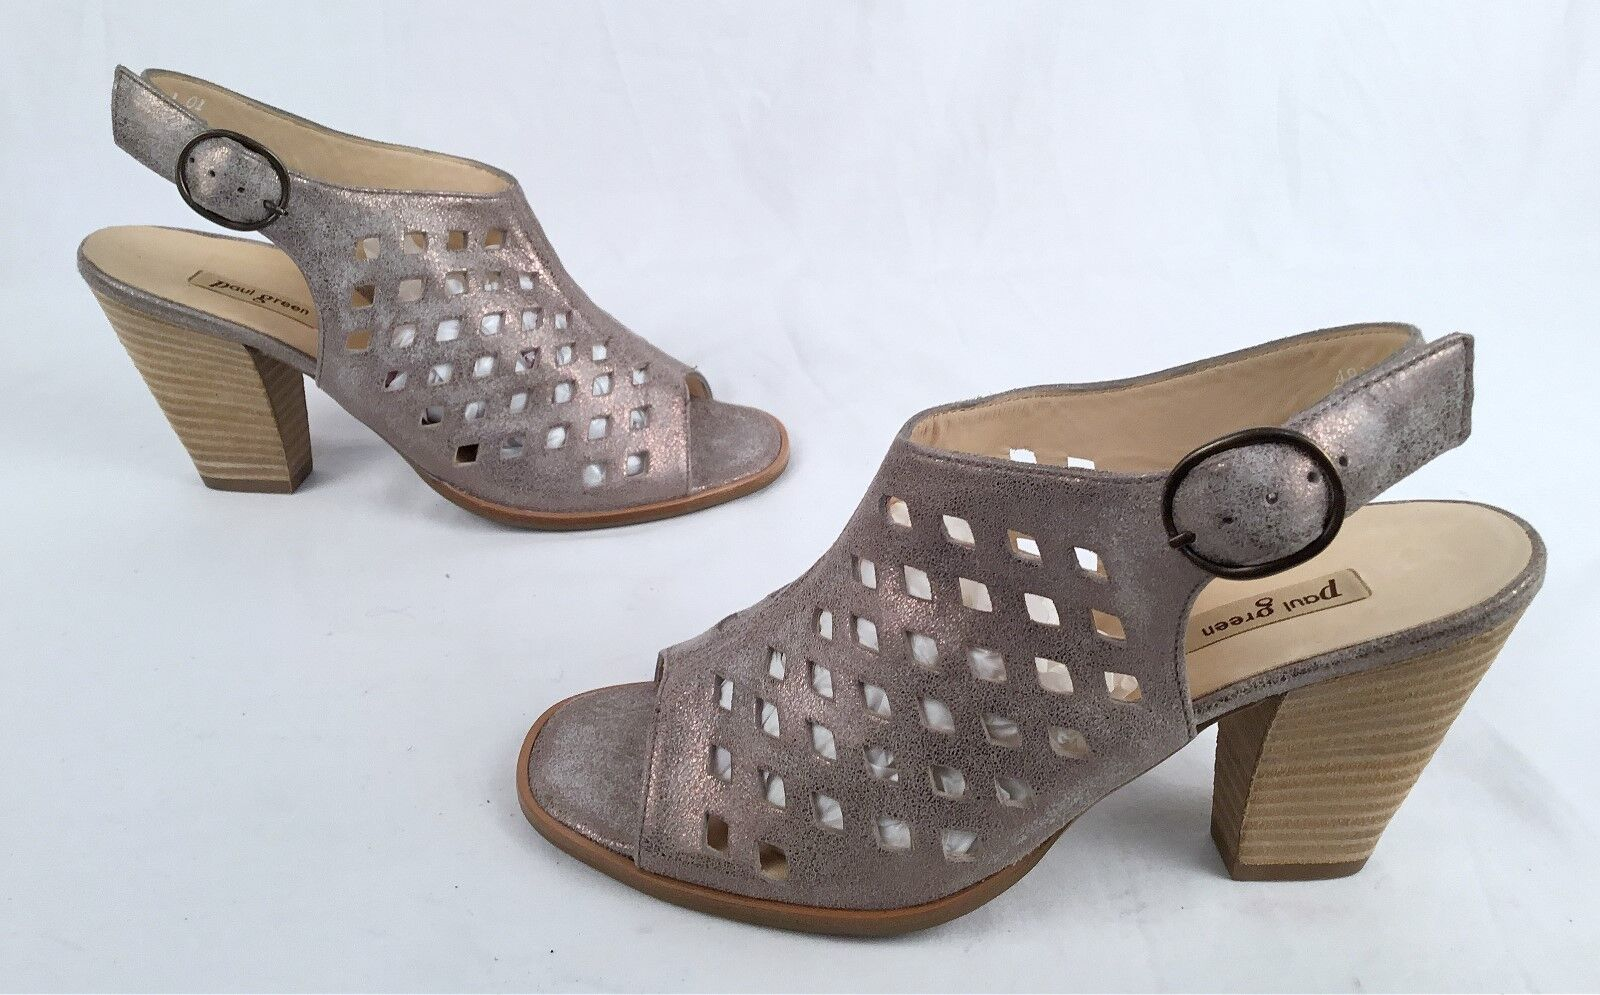 NEW   Sandal-Metallic Paul Grün Perforated  Sandal-Metallic   Leder- US 6.5/ AU 4- $359 (P49) 5275d2